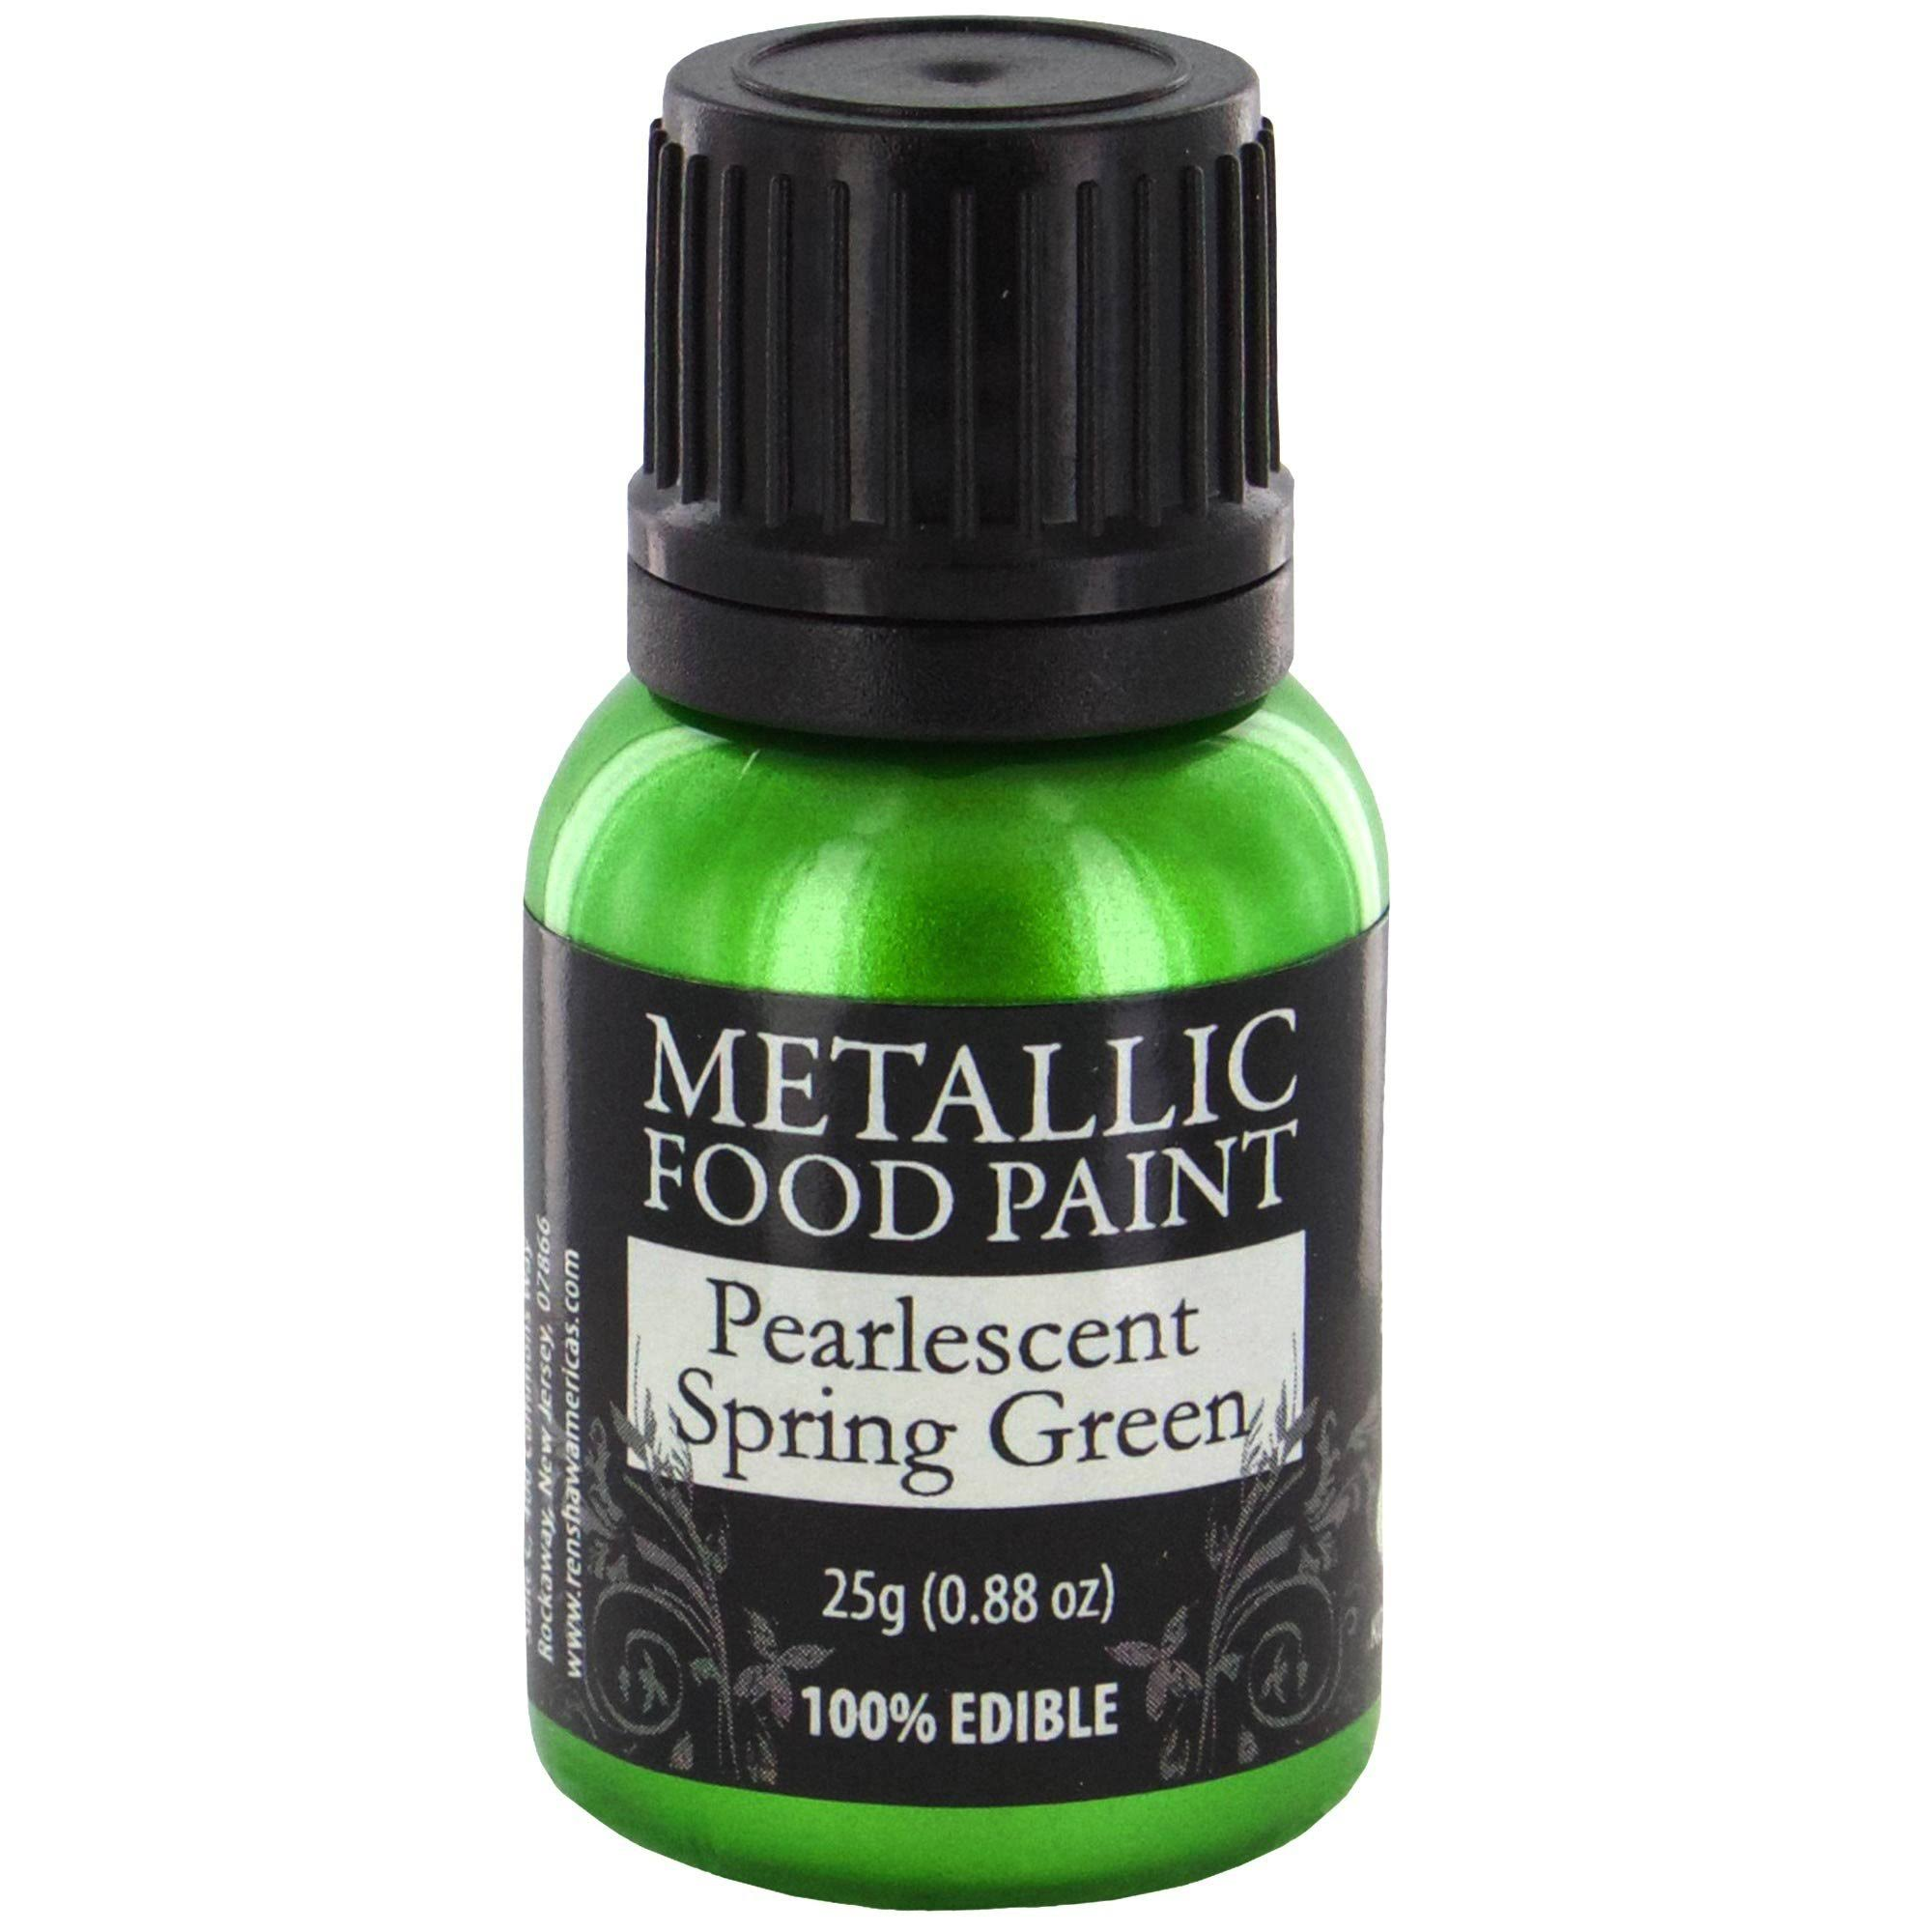 Metallic Food Paint - Pearlescent Spring Green, 25g